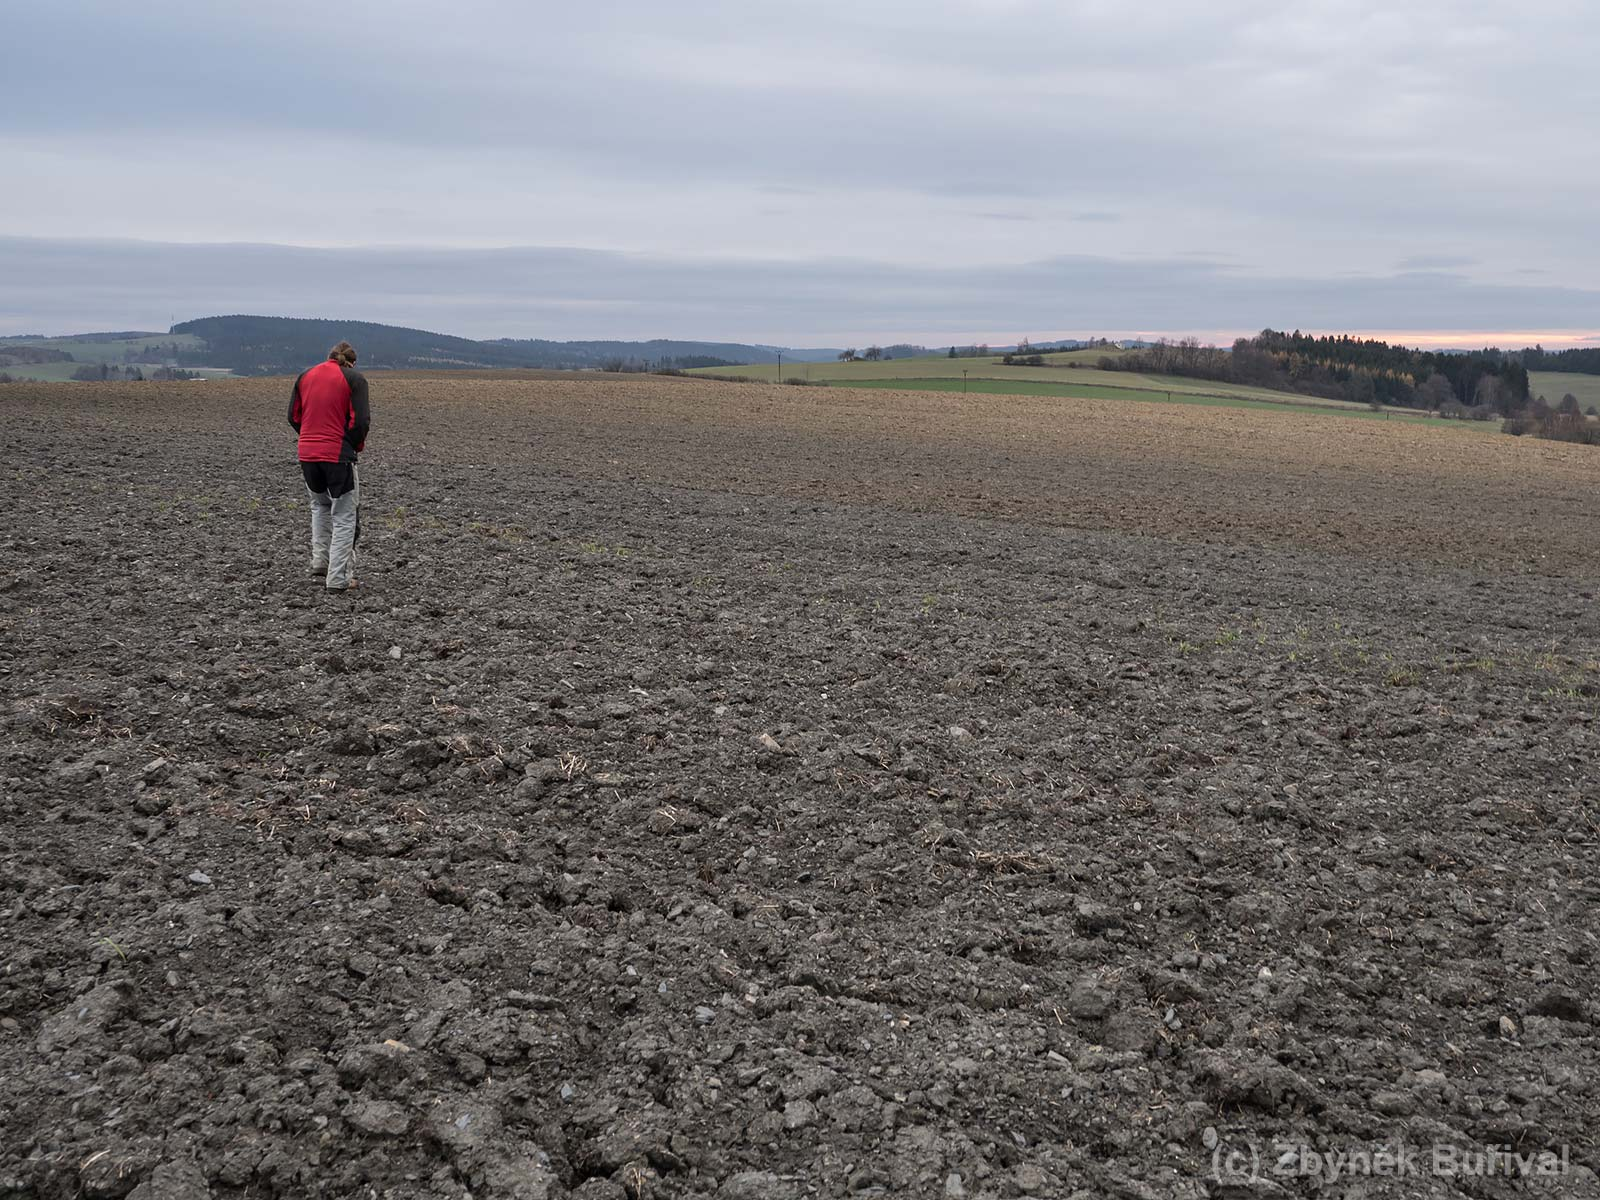 Collecting almandine garnet on the ploughed field near Ústup village, Czech Republic